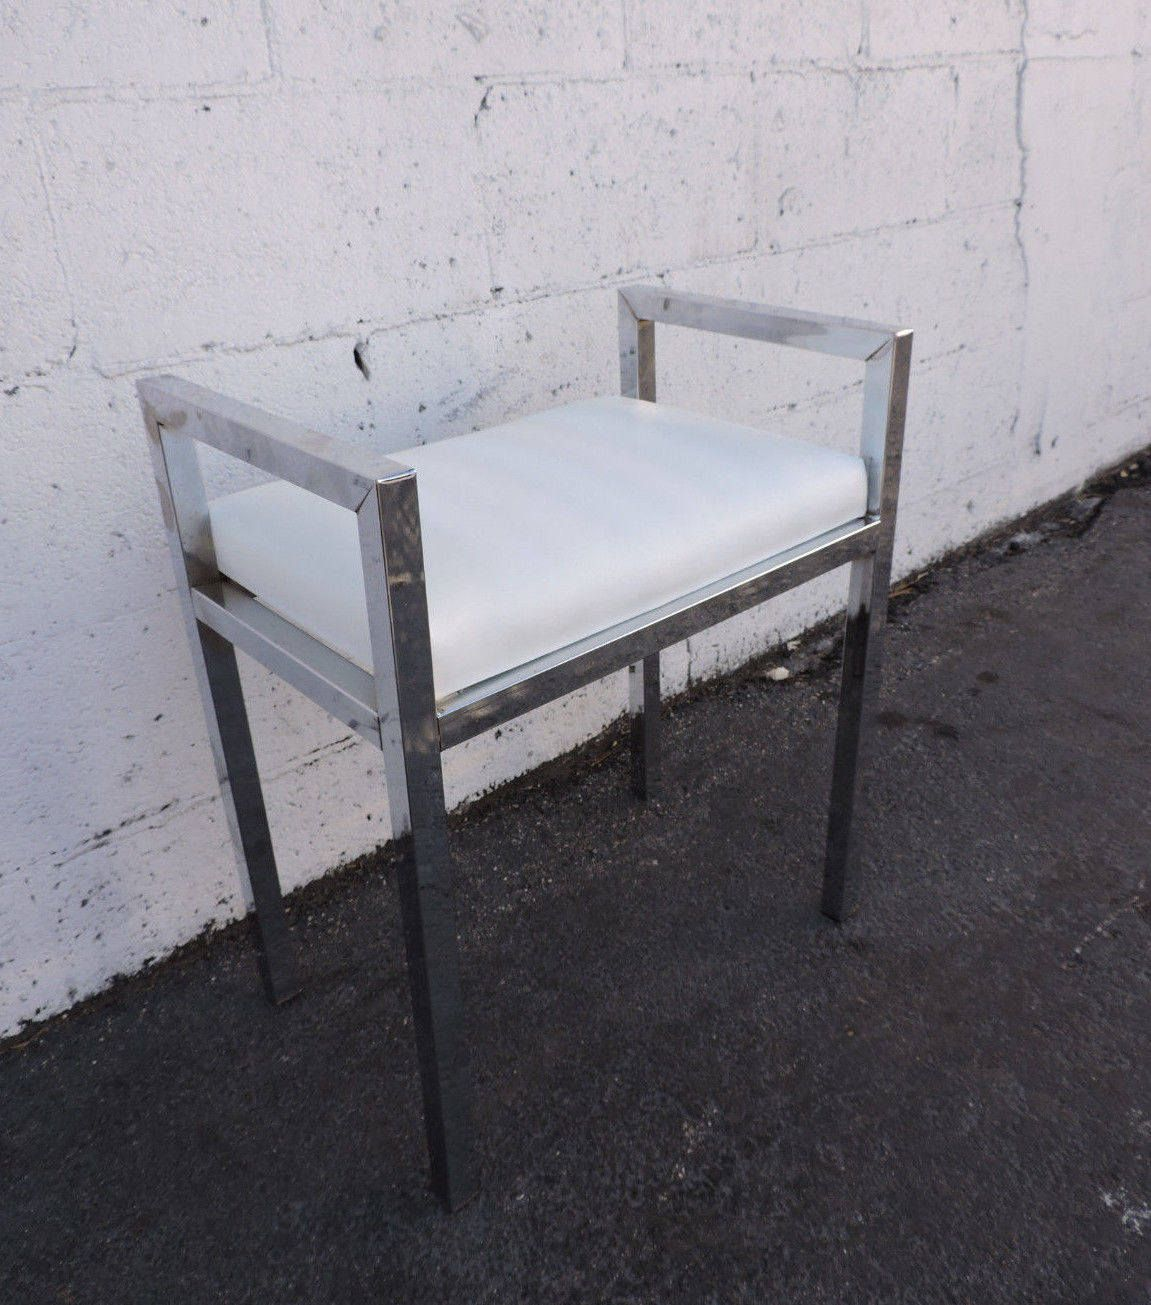 Sensational Vintage Mid Century Small Chrome And White Vinyl Vanity Beatyapartments Chair Design Images Beatyapartmentscom